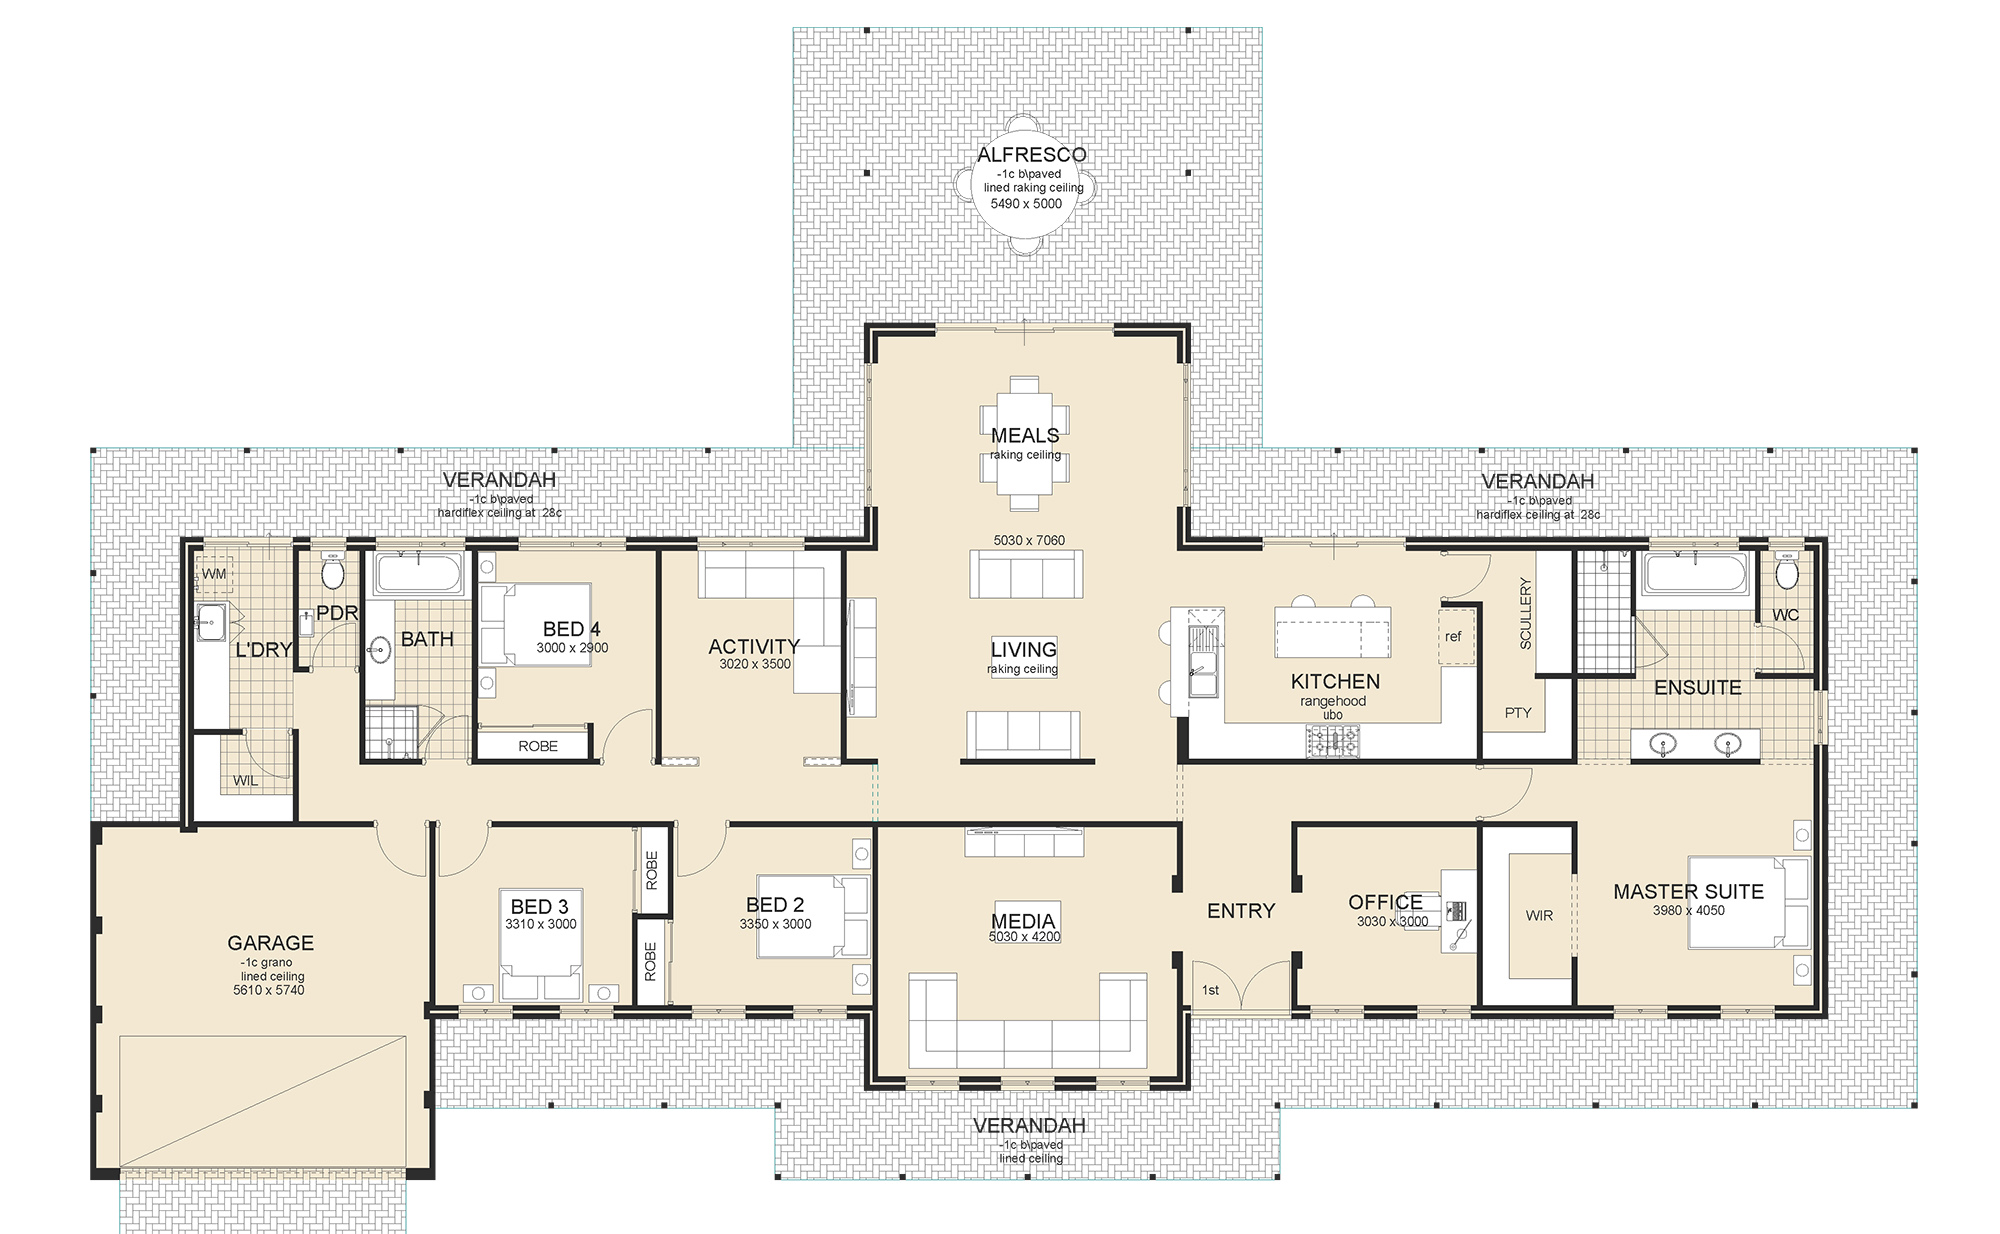 Principle house plan